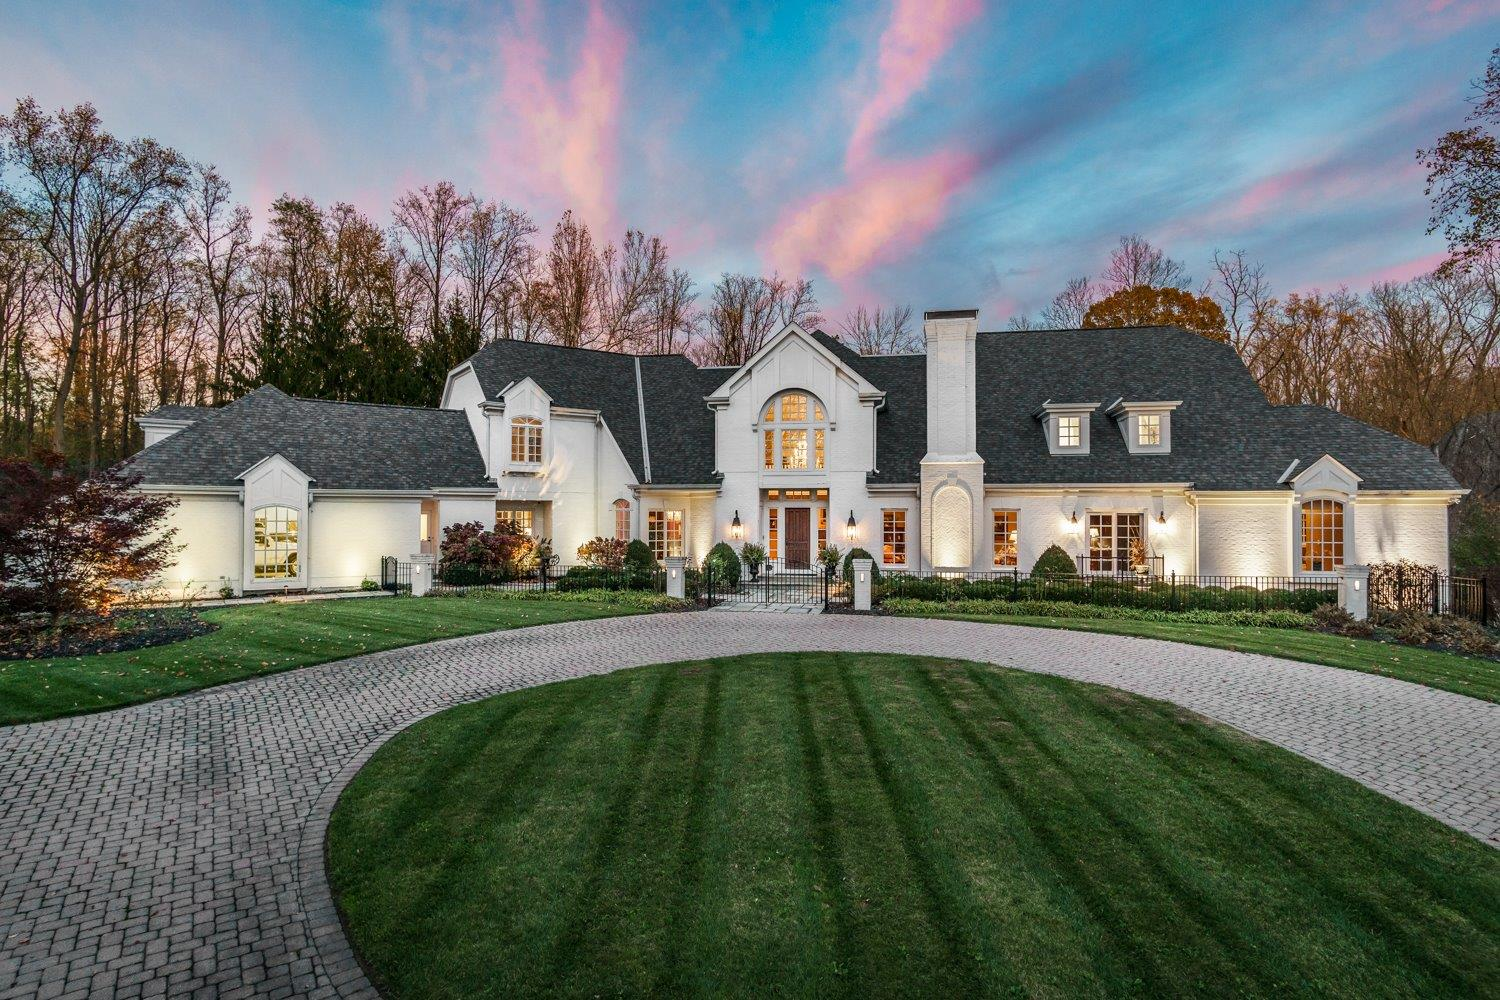 Grand estate in the heart of Coldstream. Exquisite home nestled on 9 private acres. Completely updated with high end finishes. Amazing solarium looking over beautiful pool and grounds. Incredible theater room. Perfect home to entertain. Luxury living at its best! Owner/Agent.